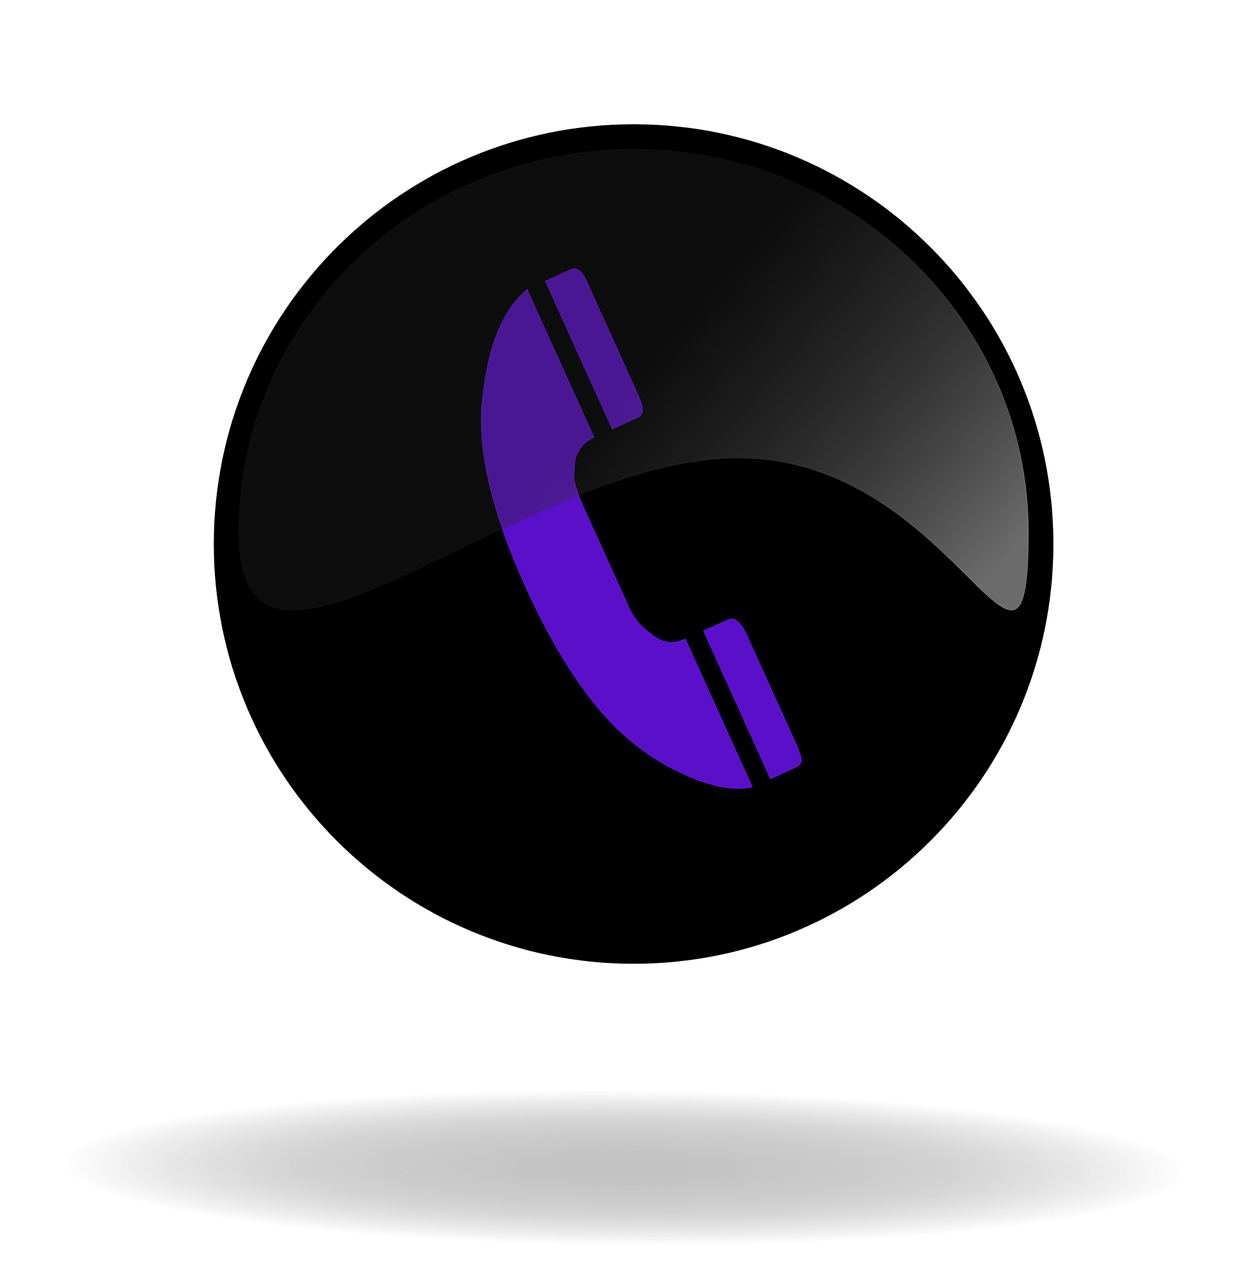 call call button black and purple button free photo